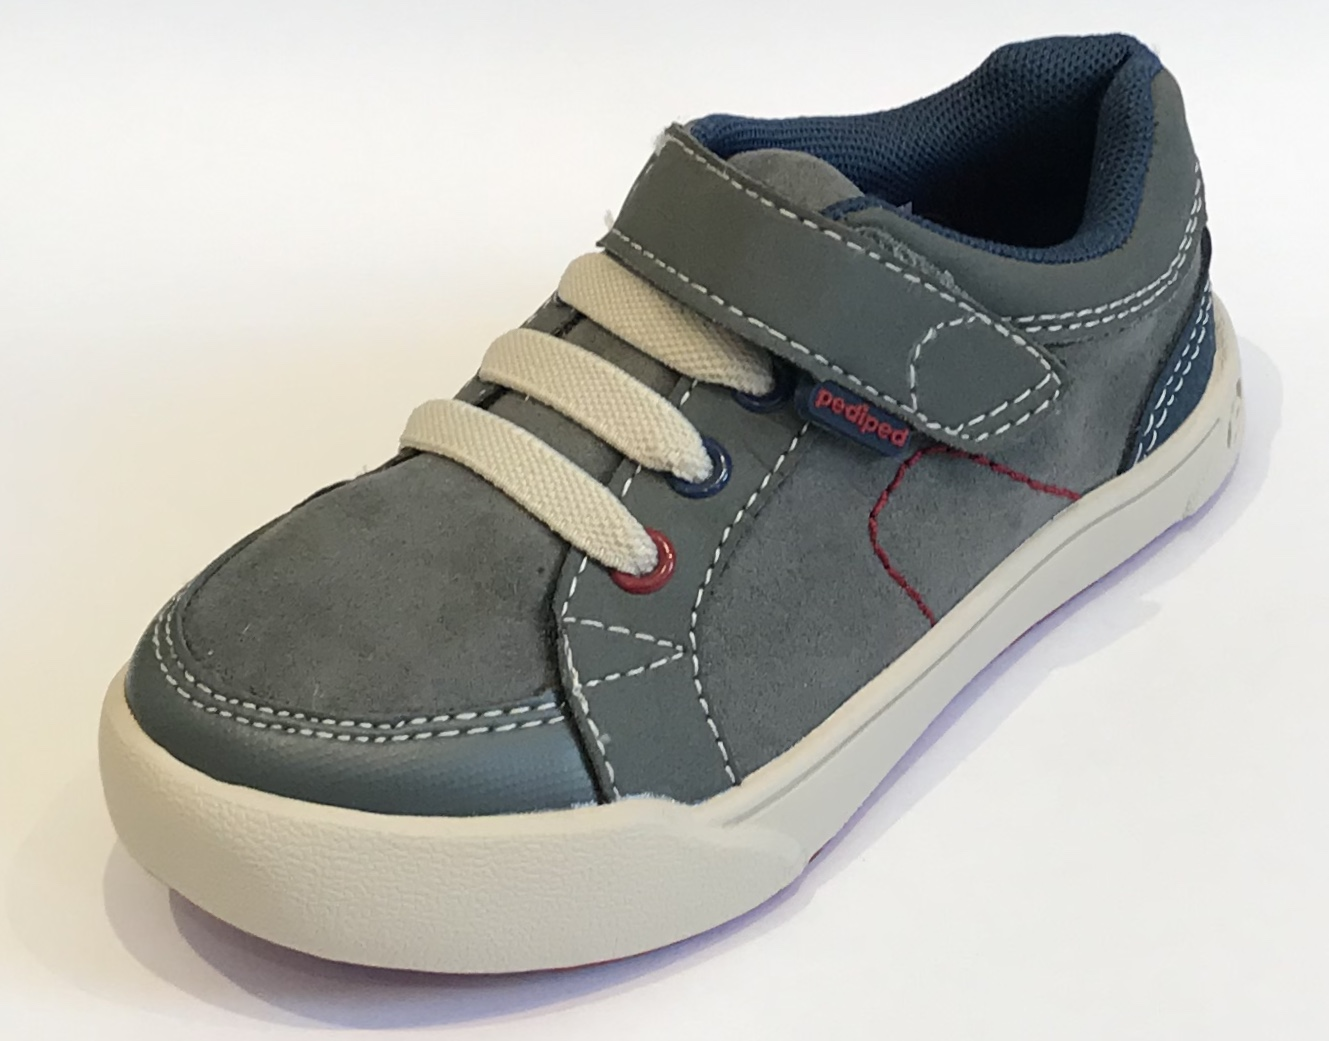 Pediped Flex Dani Grey